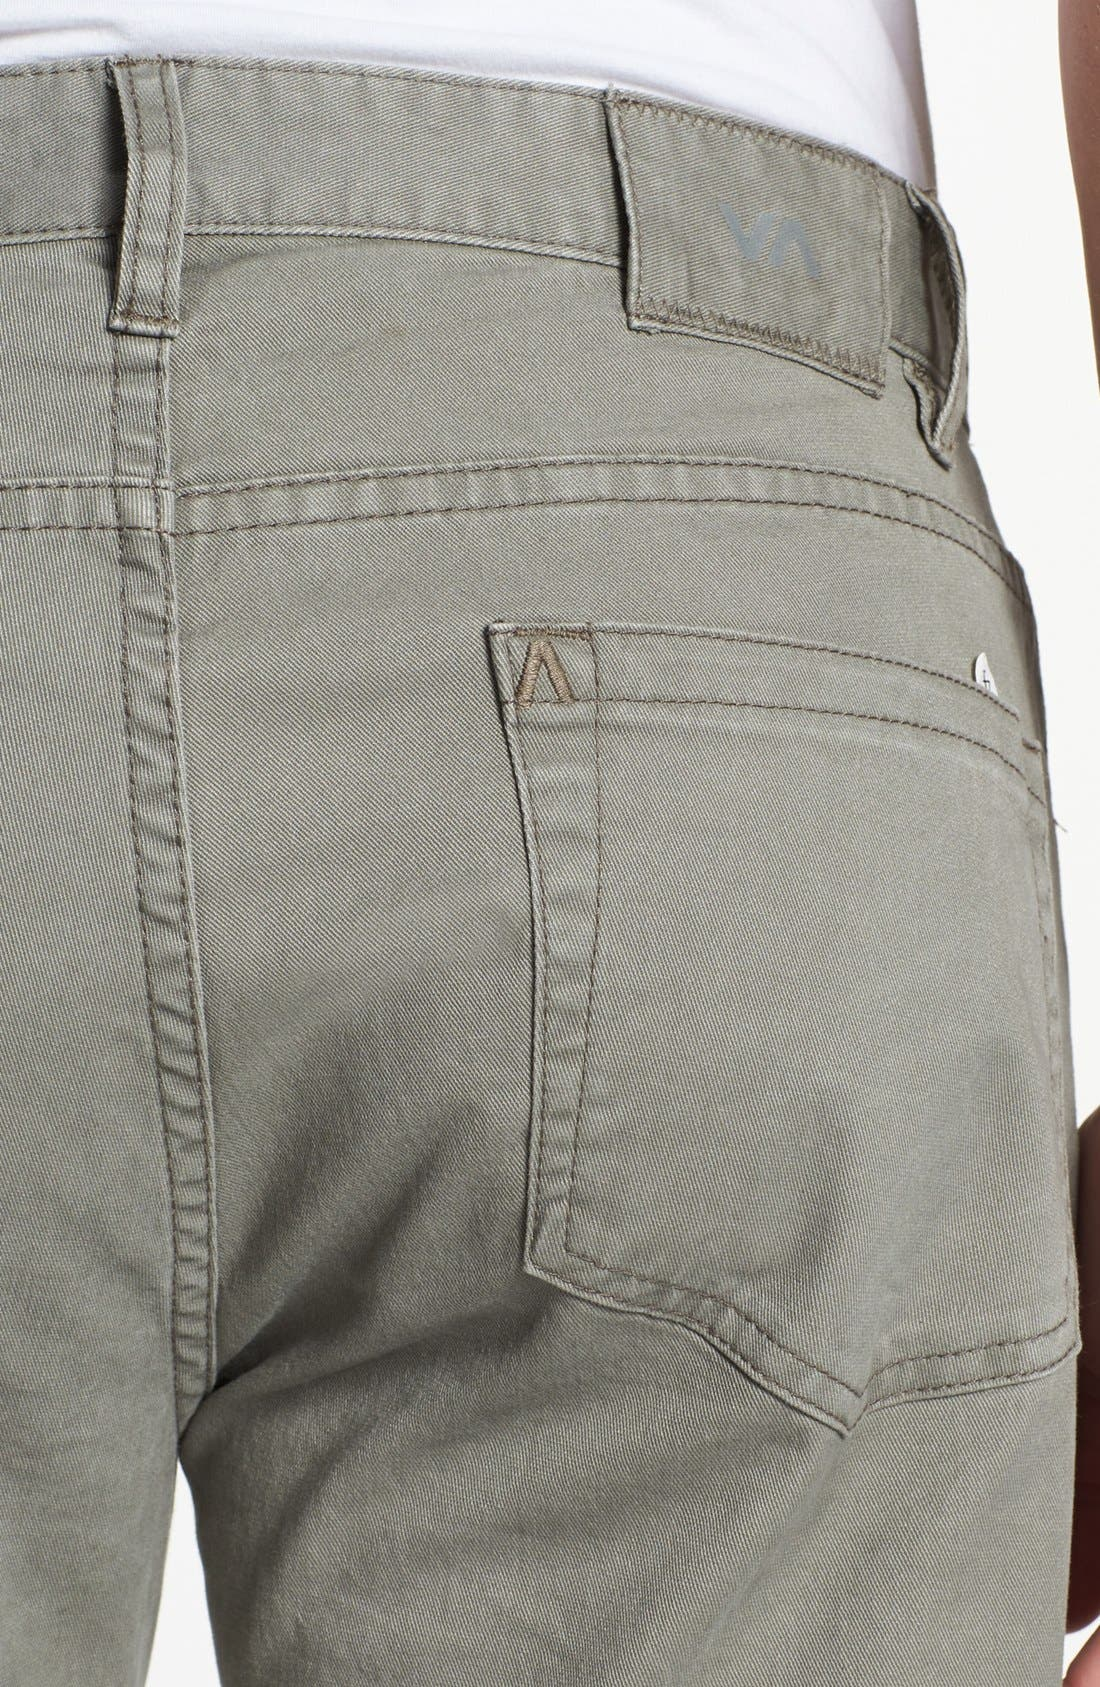 Alternate Image 3  - RVCA 'Stay' Slim Fit Pants